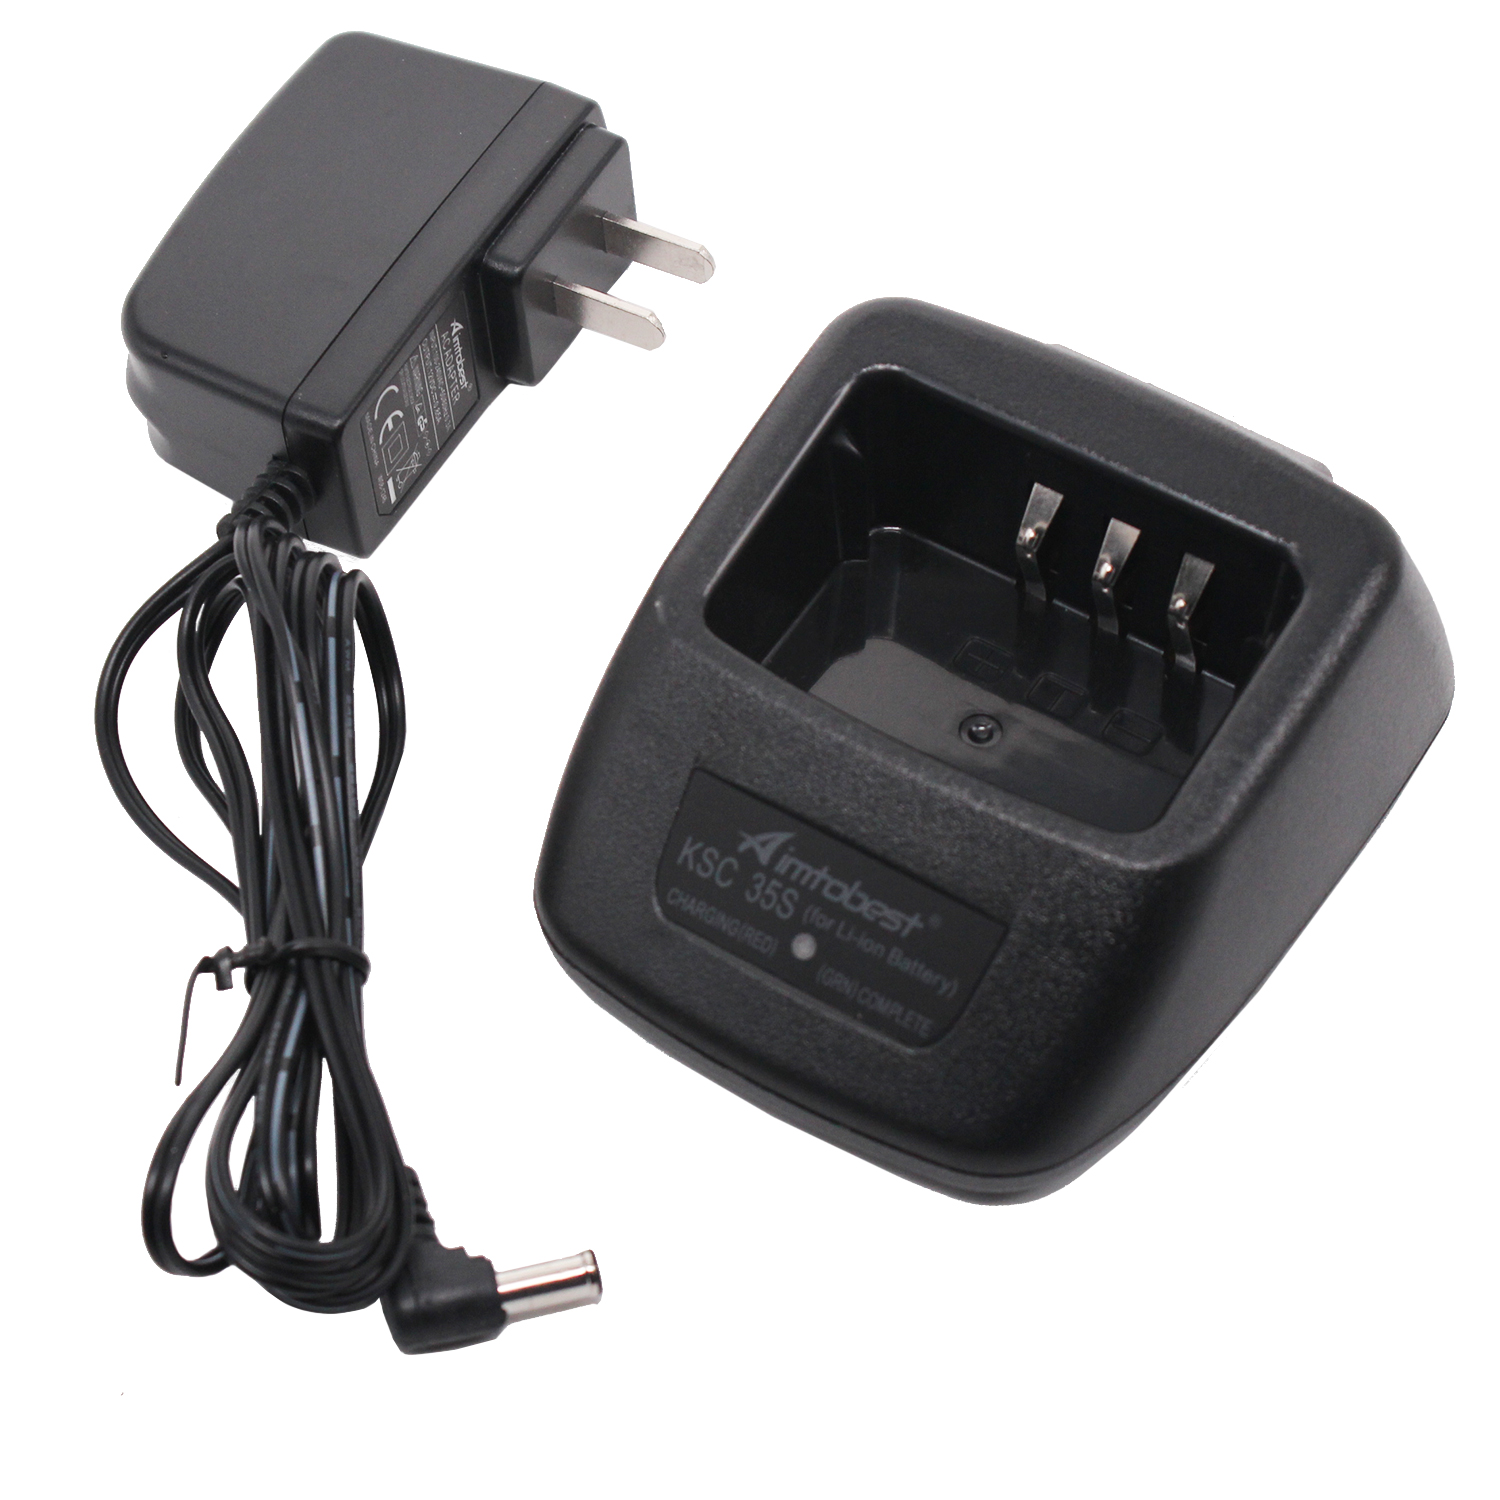 KSC-35S Rapid Charger For KENWOOD TK-3000 TK-2000 KNB-63L KNB-65L KNB-45L TK-3400 TK2400 TK-3301 TK-3501 TK-U100 TH-K20E TH-K40A